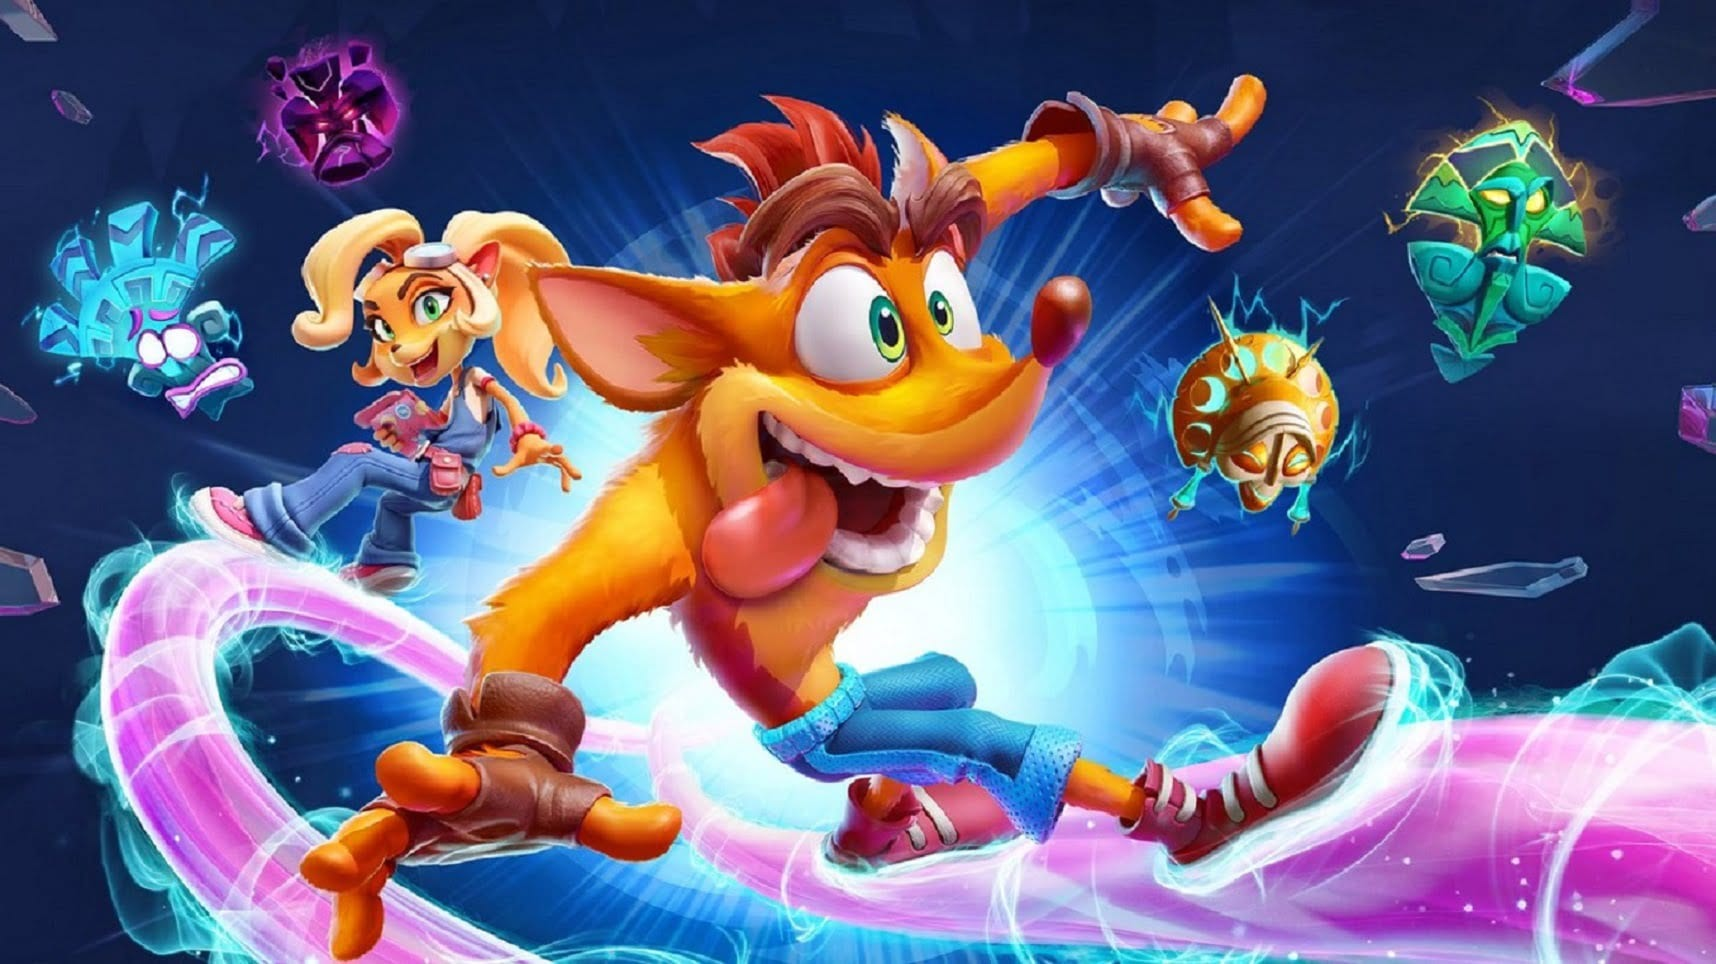 Rumors: The fourth game in the Crash Bandicoot series is three times larger than any of the previous games in the series